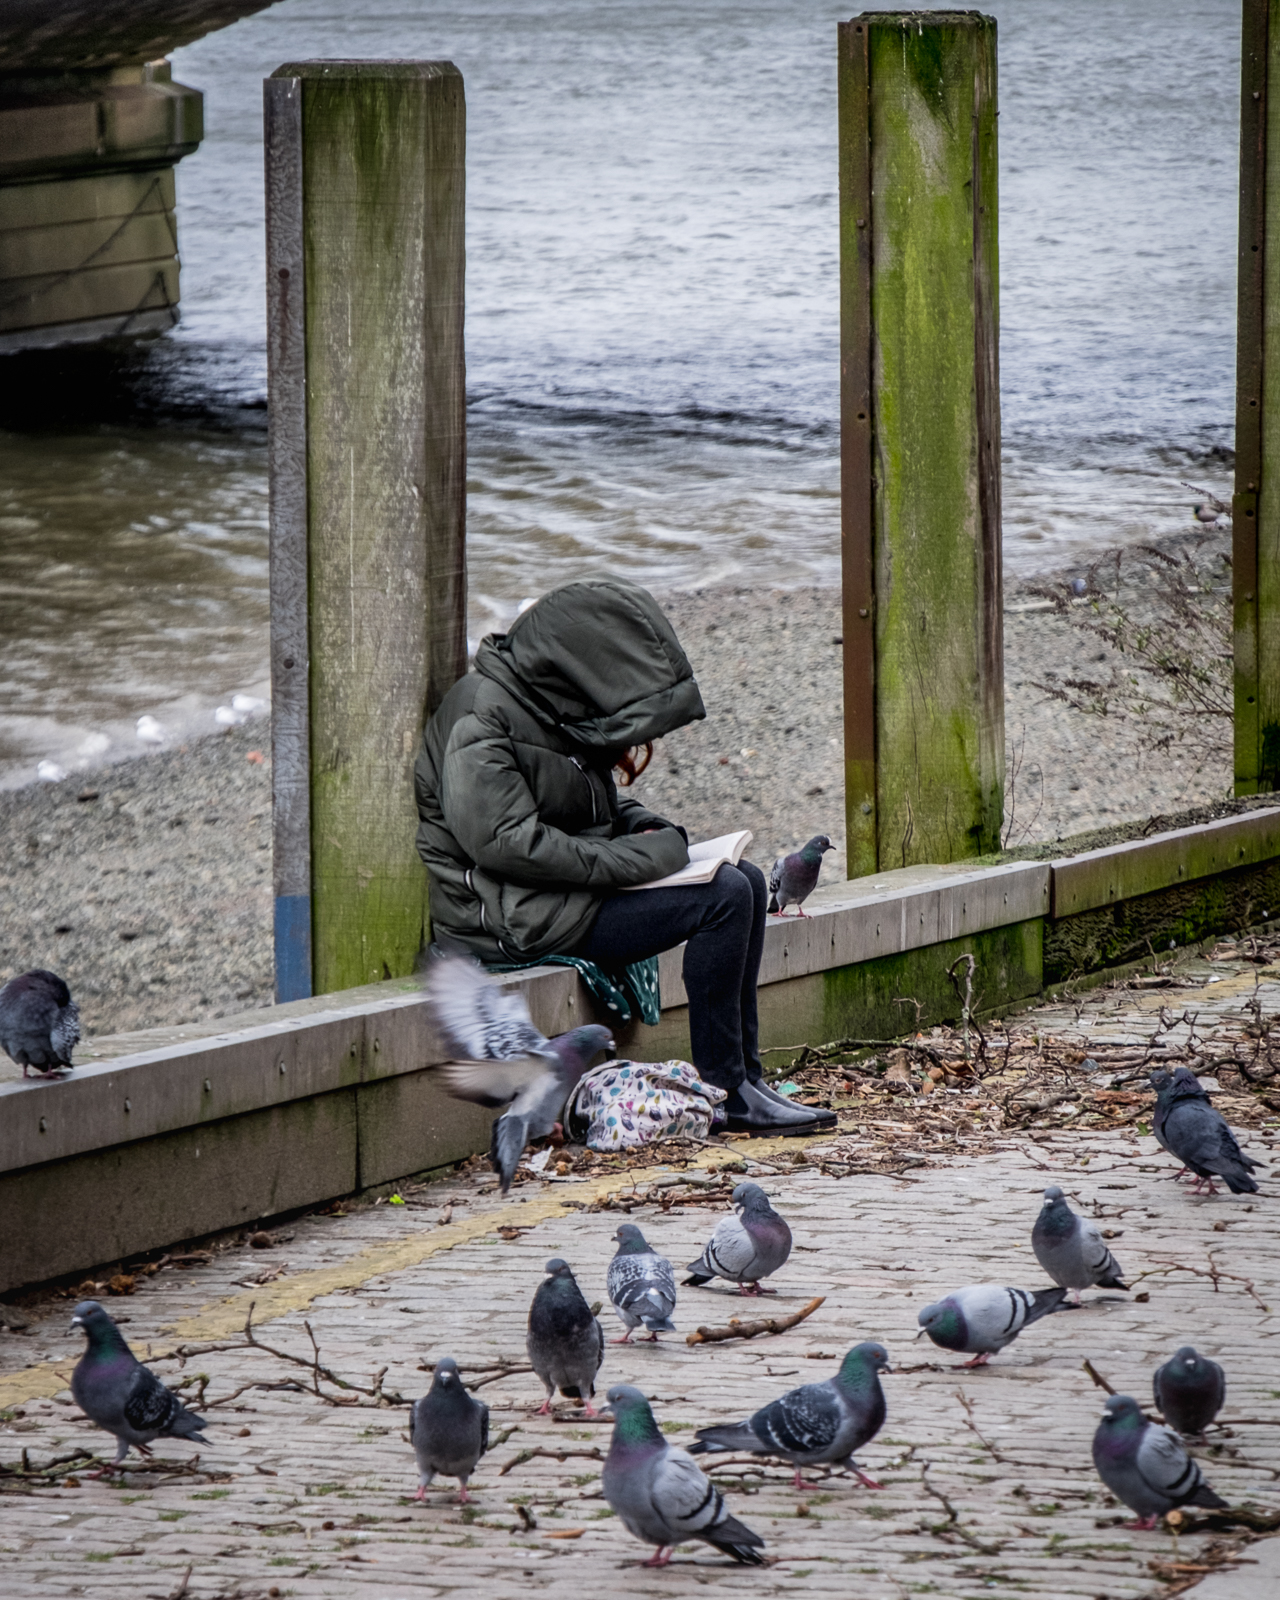 20170223_Wandsworth_Putney-Embankment_Pidgeon-Literacy